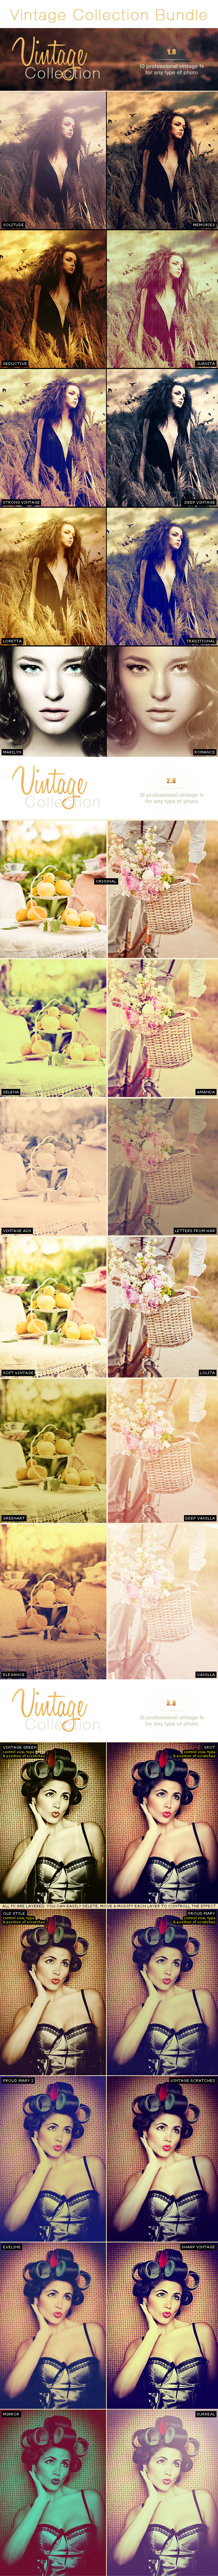 30 Vintage Pro Collection Photo Effects | Bundle - Photo Effects Actions